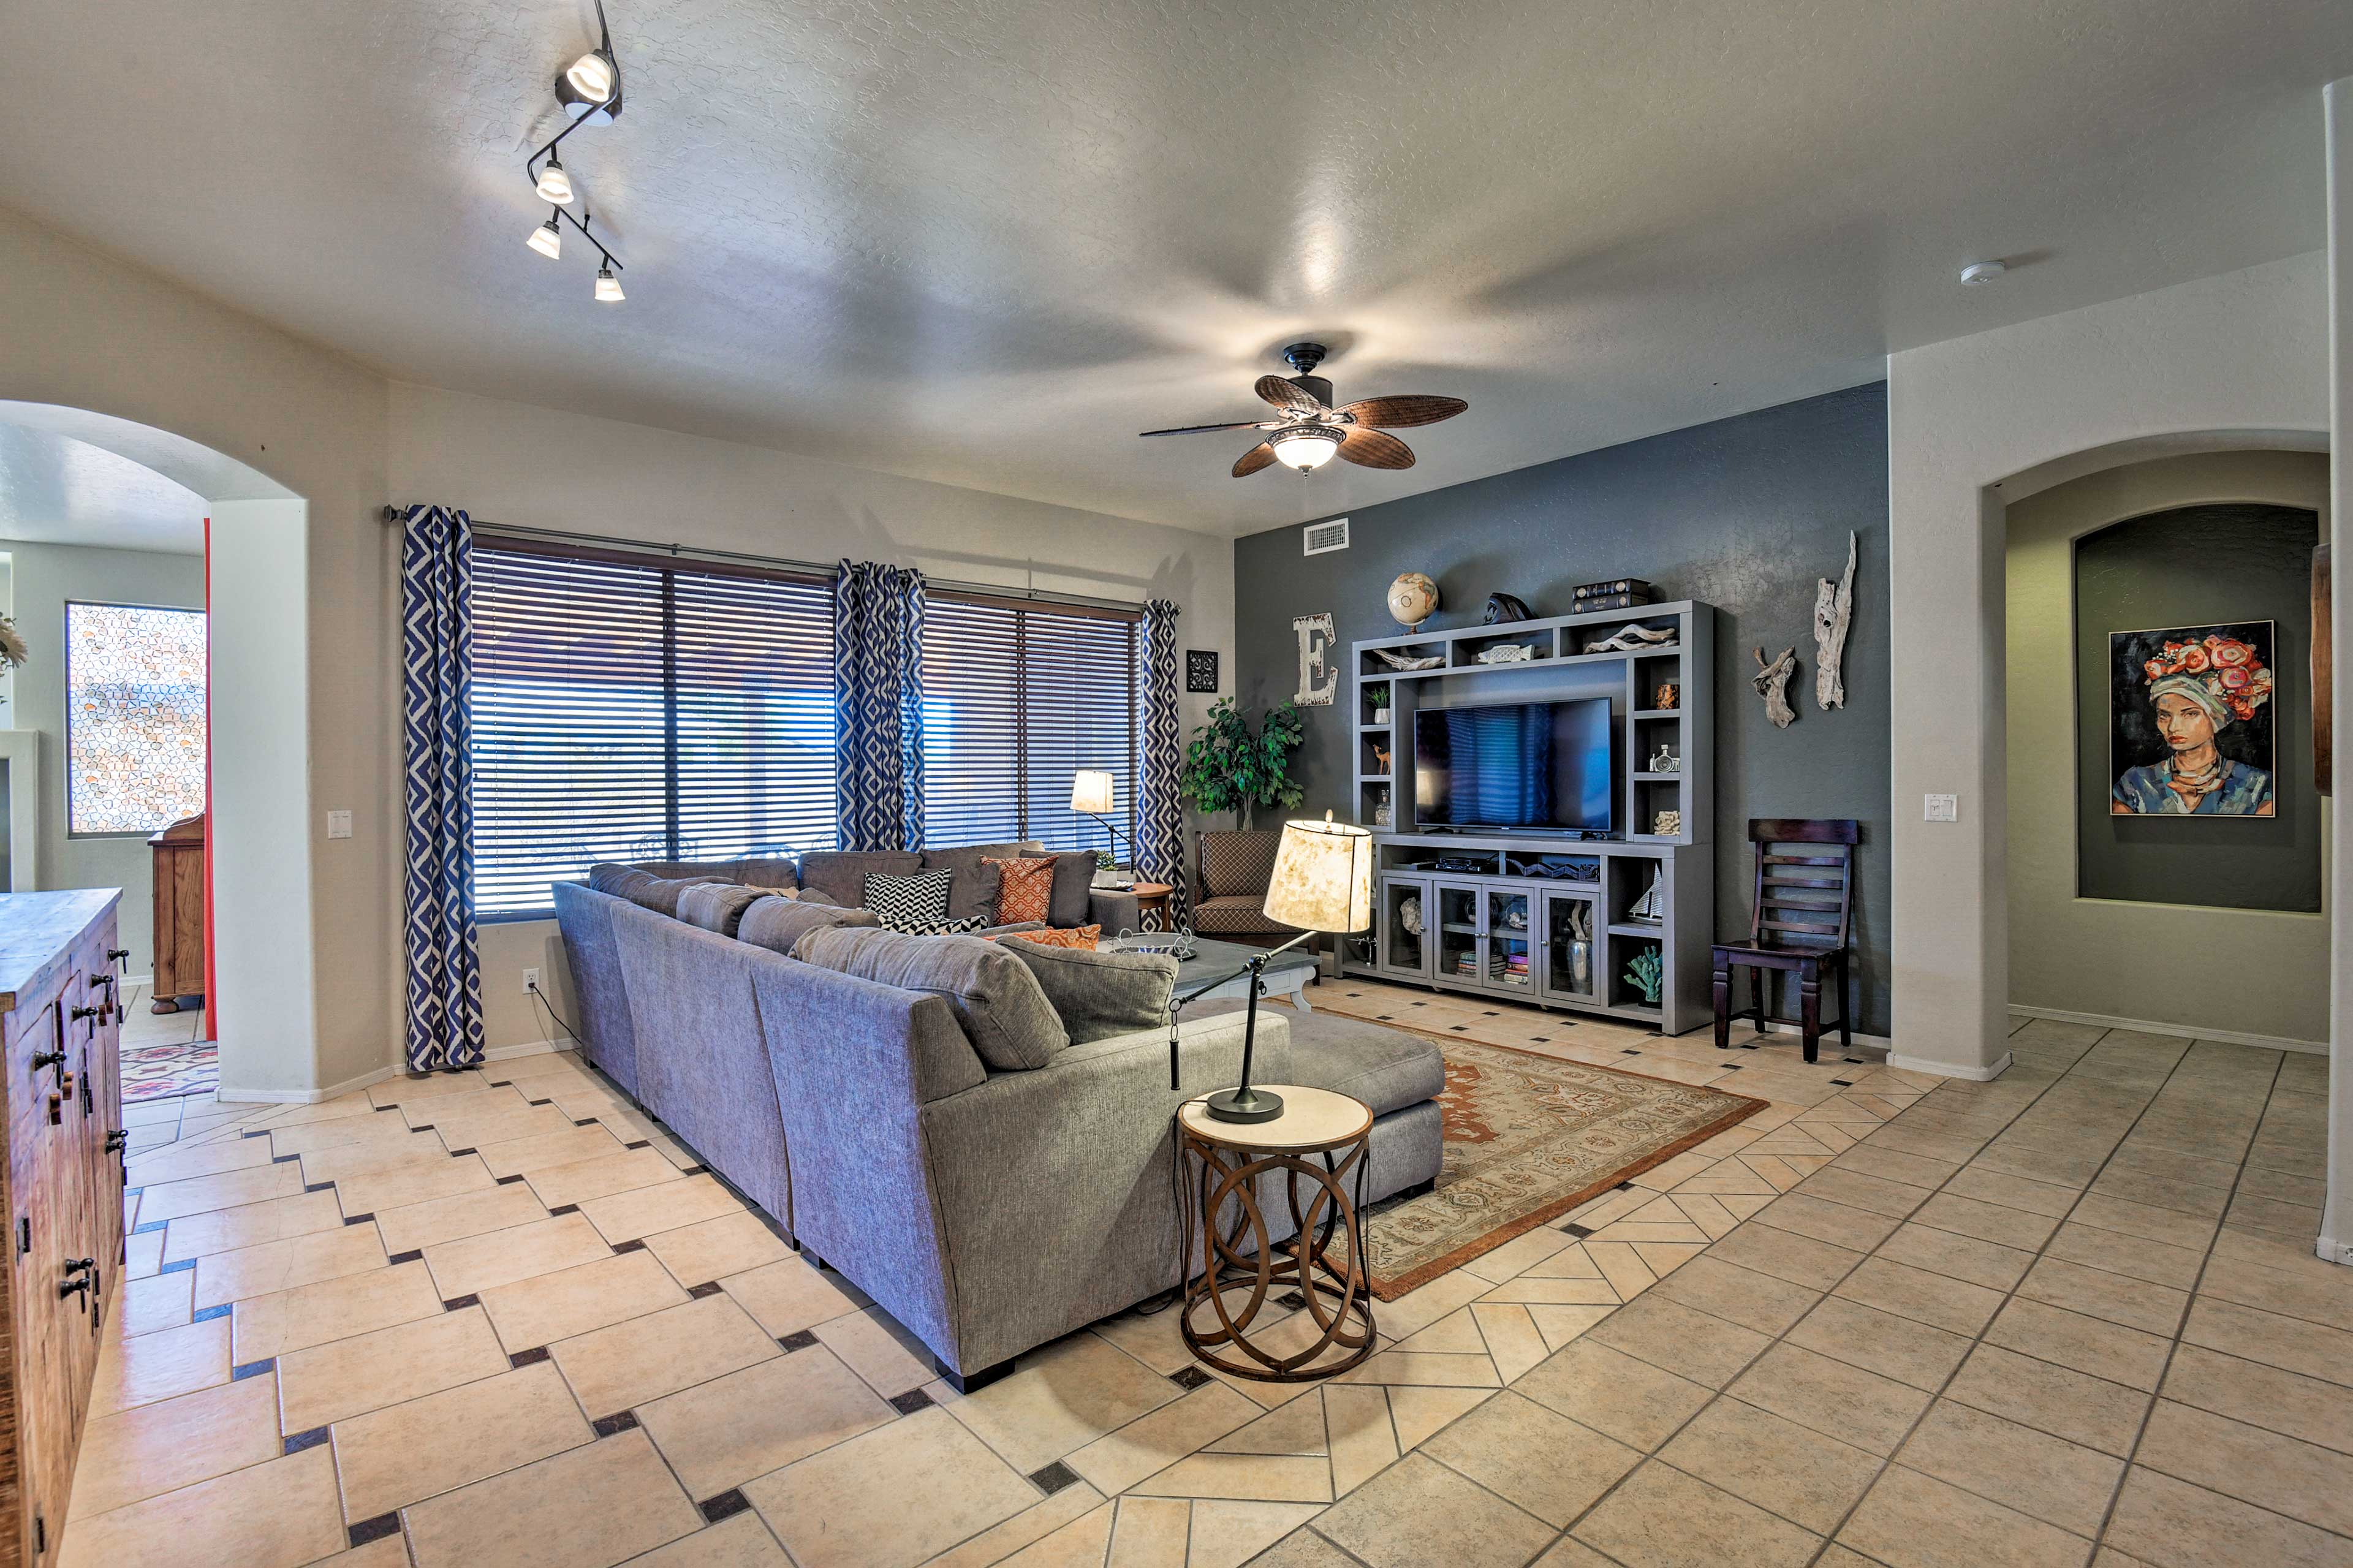 Grab a spot on the large sectional sofa and watch shows on the flat-screen TV.